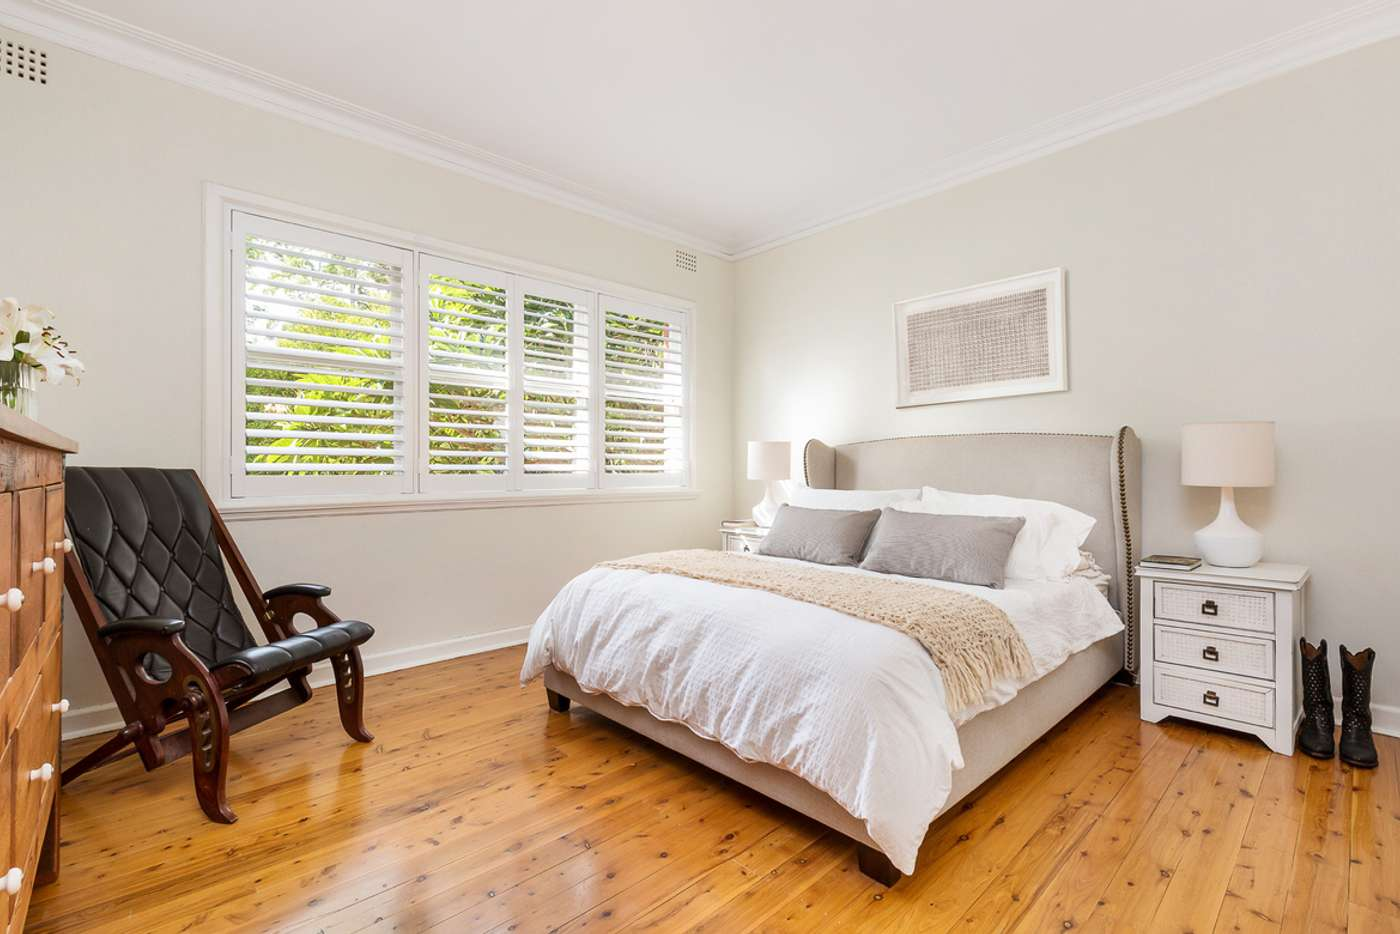 Sixth view of Homely house listing, 27 Burns Road, Wahroonga NSW 2076